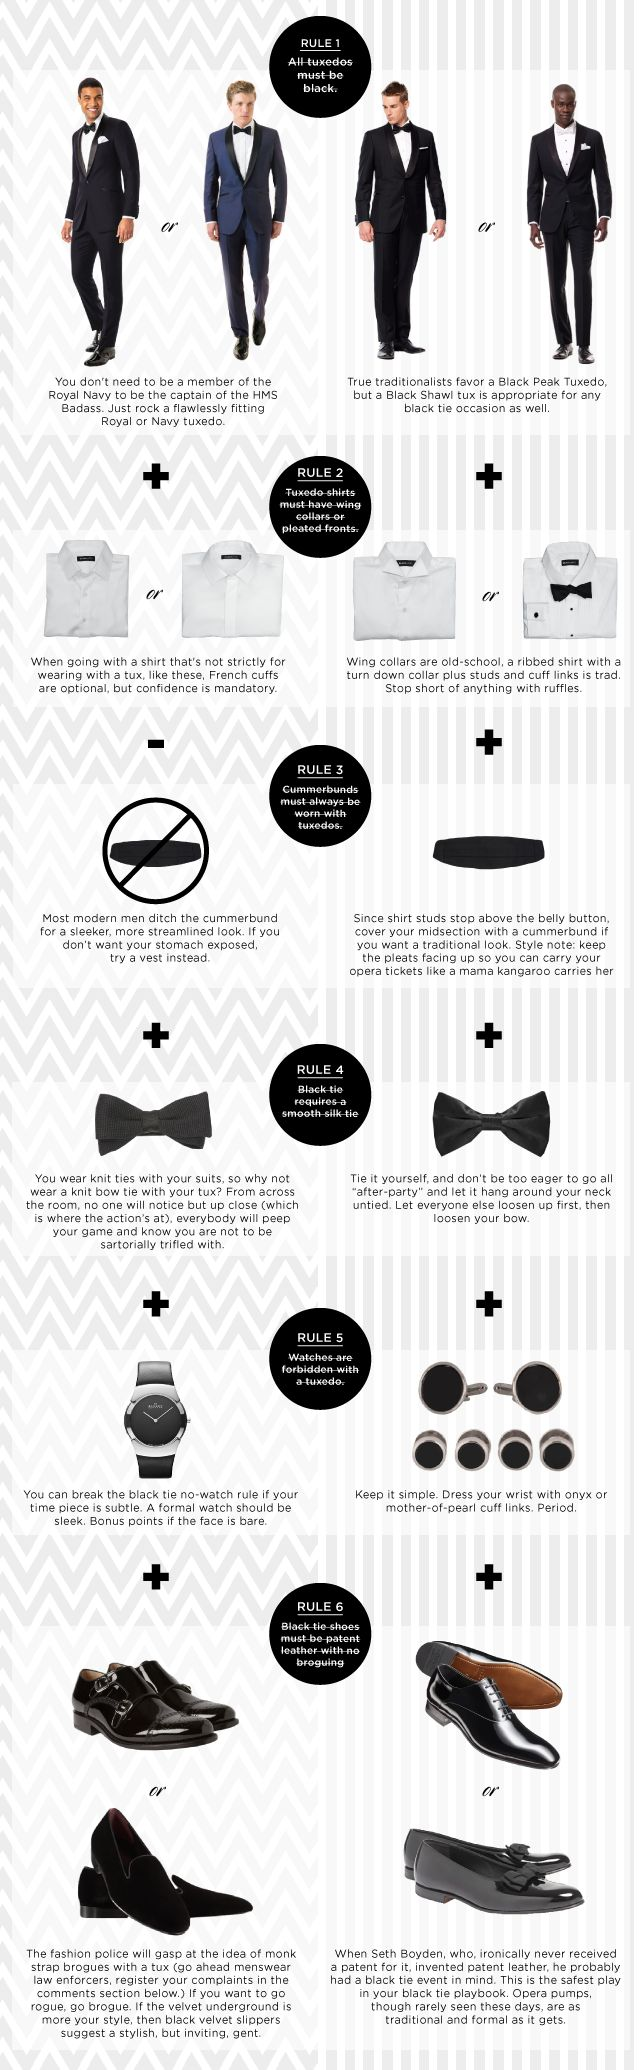 A guide to breaking all the black tie rules, in style. #zobelloman #menswear #mensfashion | Raddest Men's Fashion Looks On The Internet: http://www.raddestlooks.org